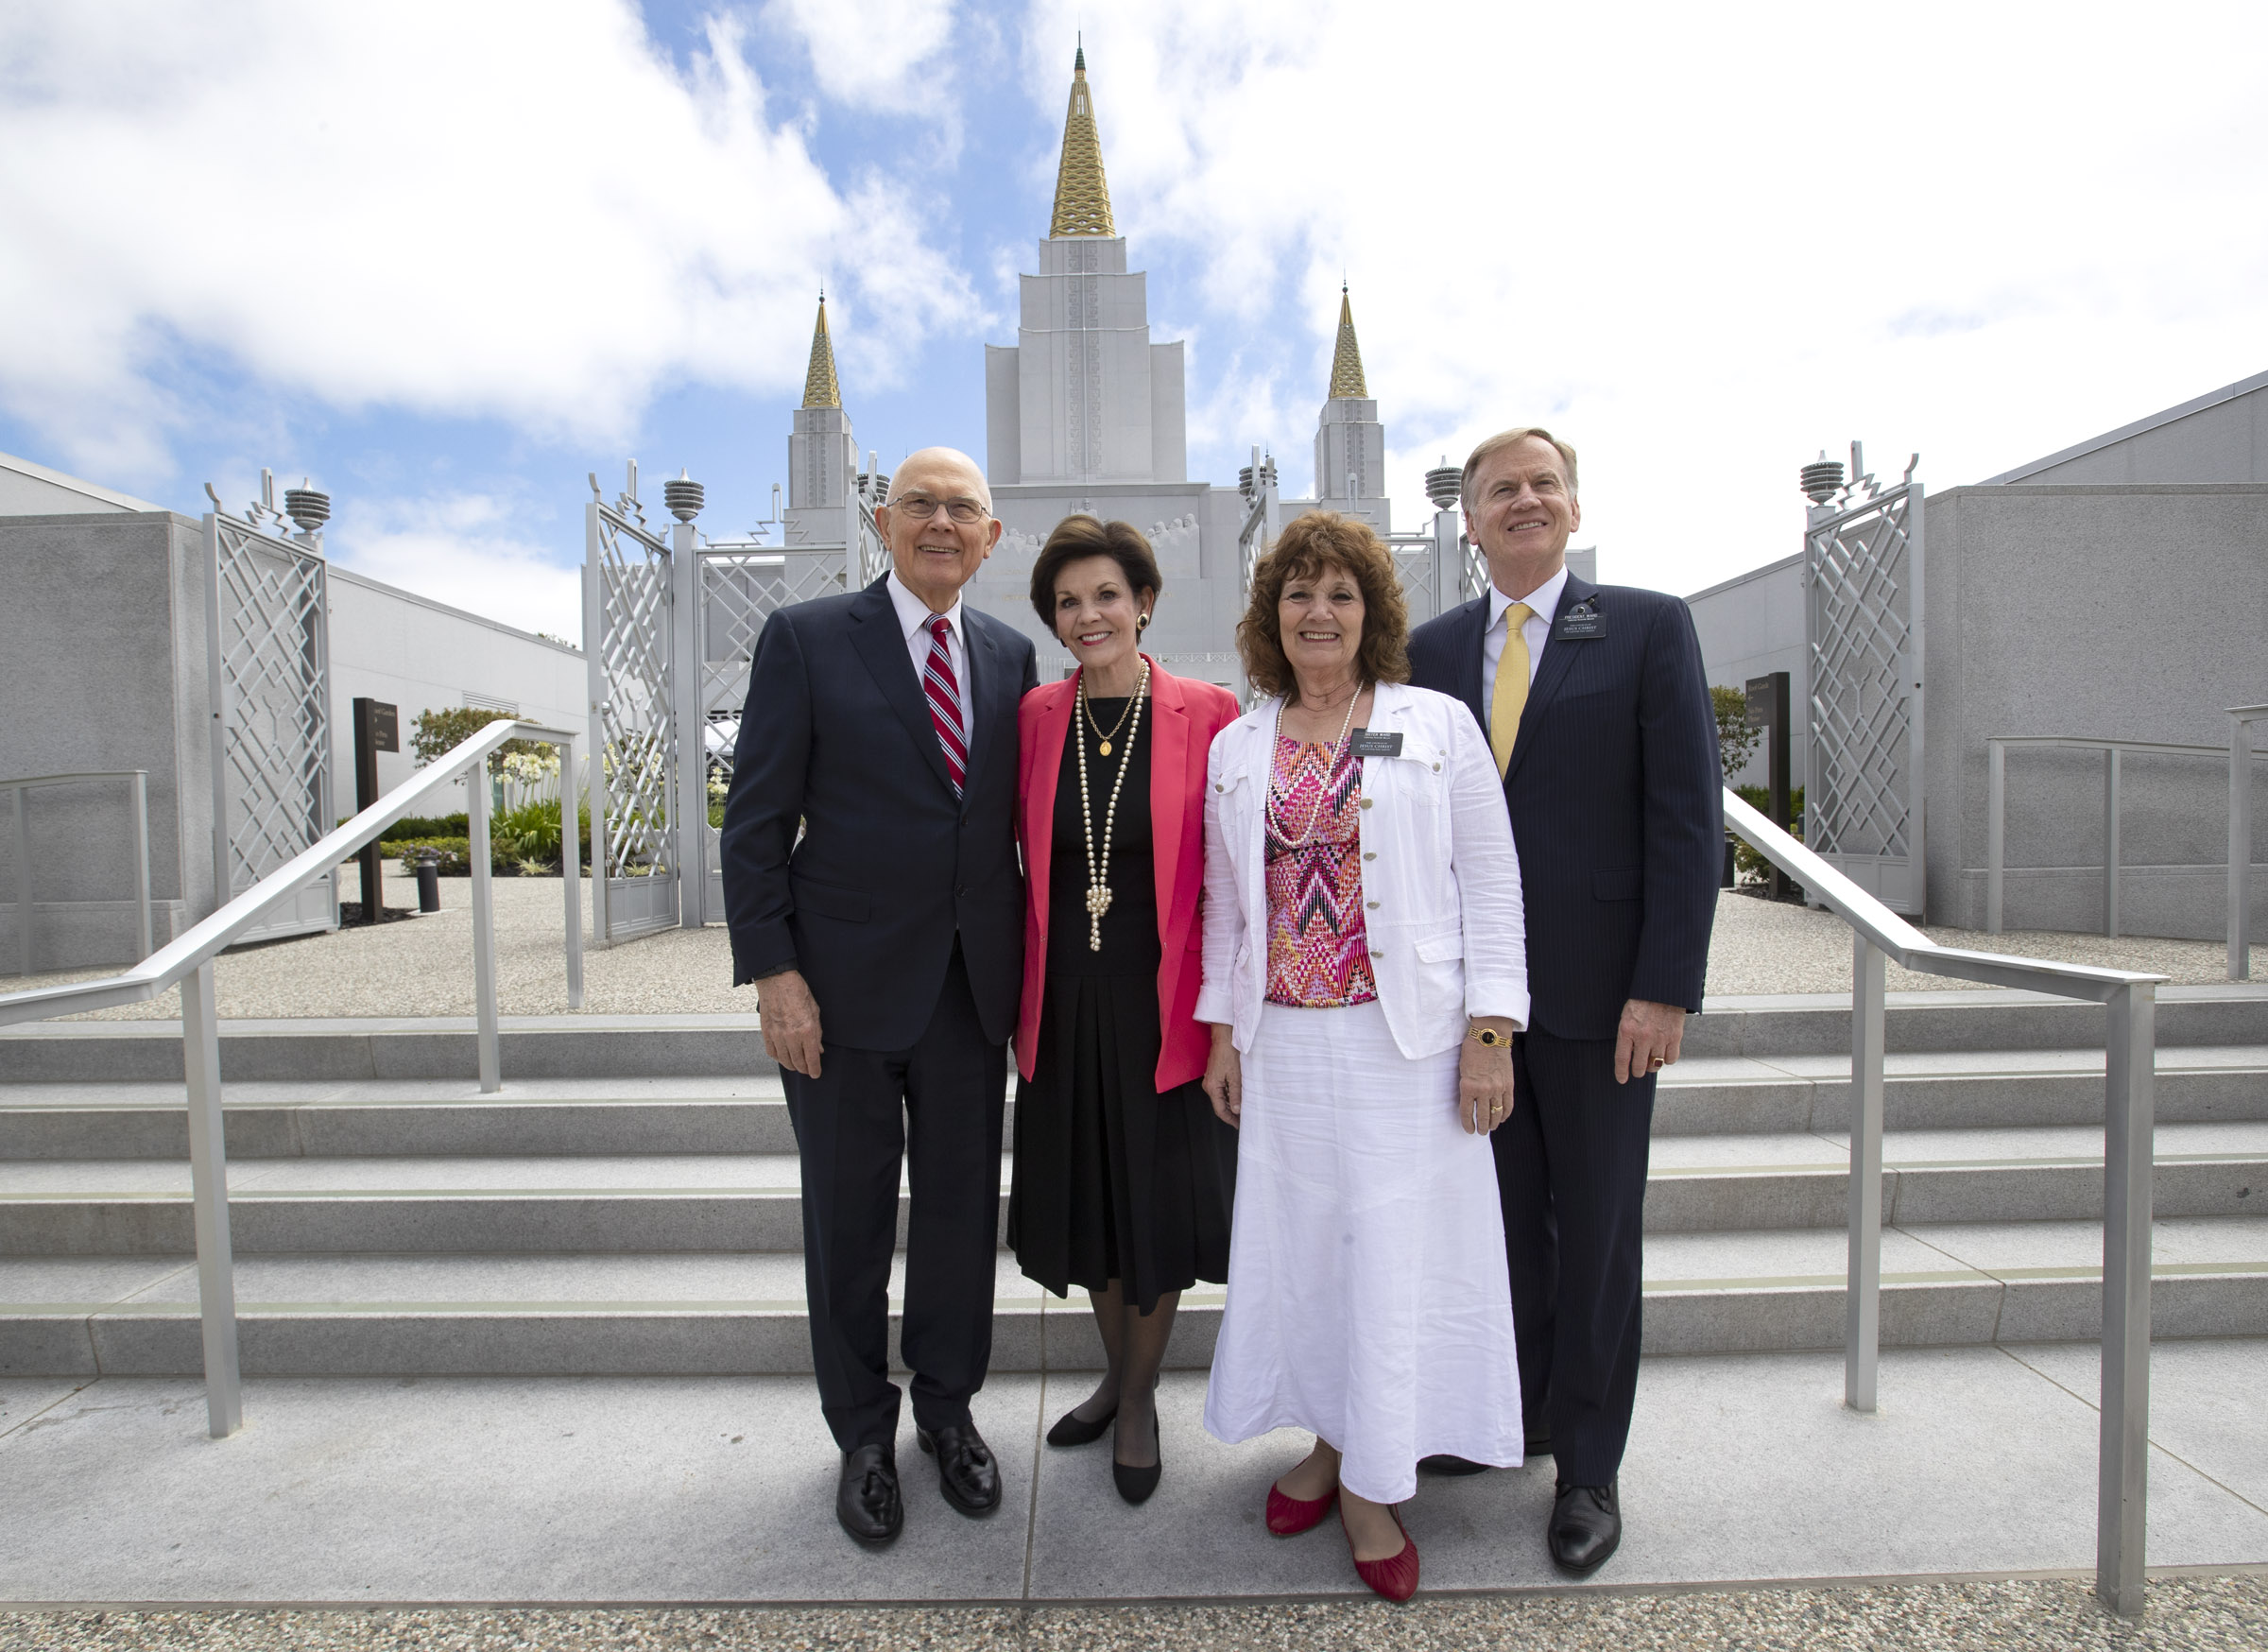 President Dallin H. Oaks, first counselor in the First Presidency, and his wife, Sister Kristen Oaks stand with Sister Sharmon O. Ward, Presidents Oaks' oldest daughter, and her husband, President Jack D. Ward, President of the California Roseville Mission, outside the Oakland California Temple on Saturday, June 15, 2019.